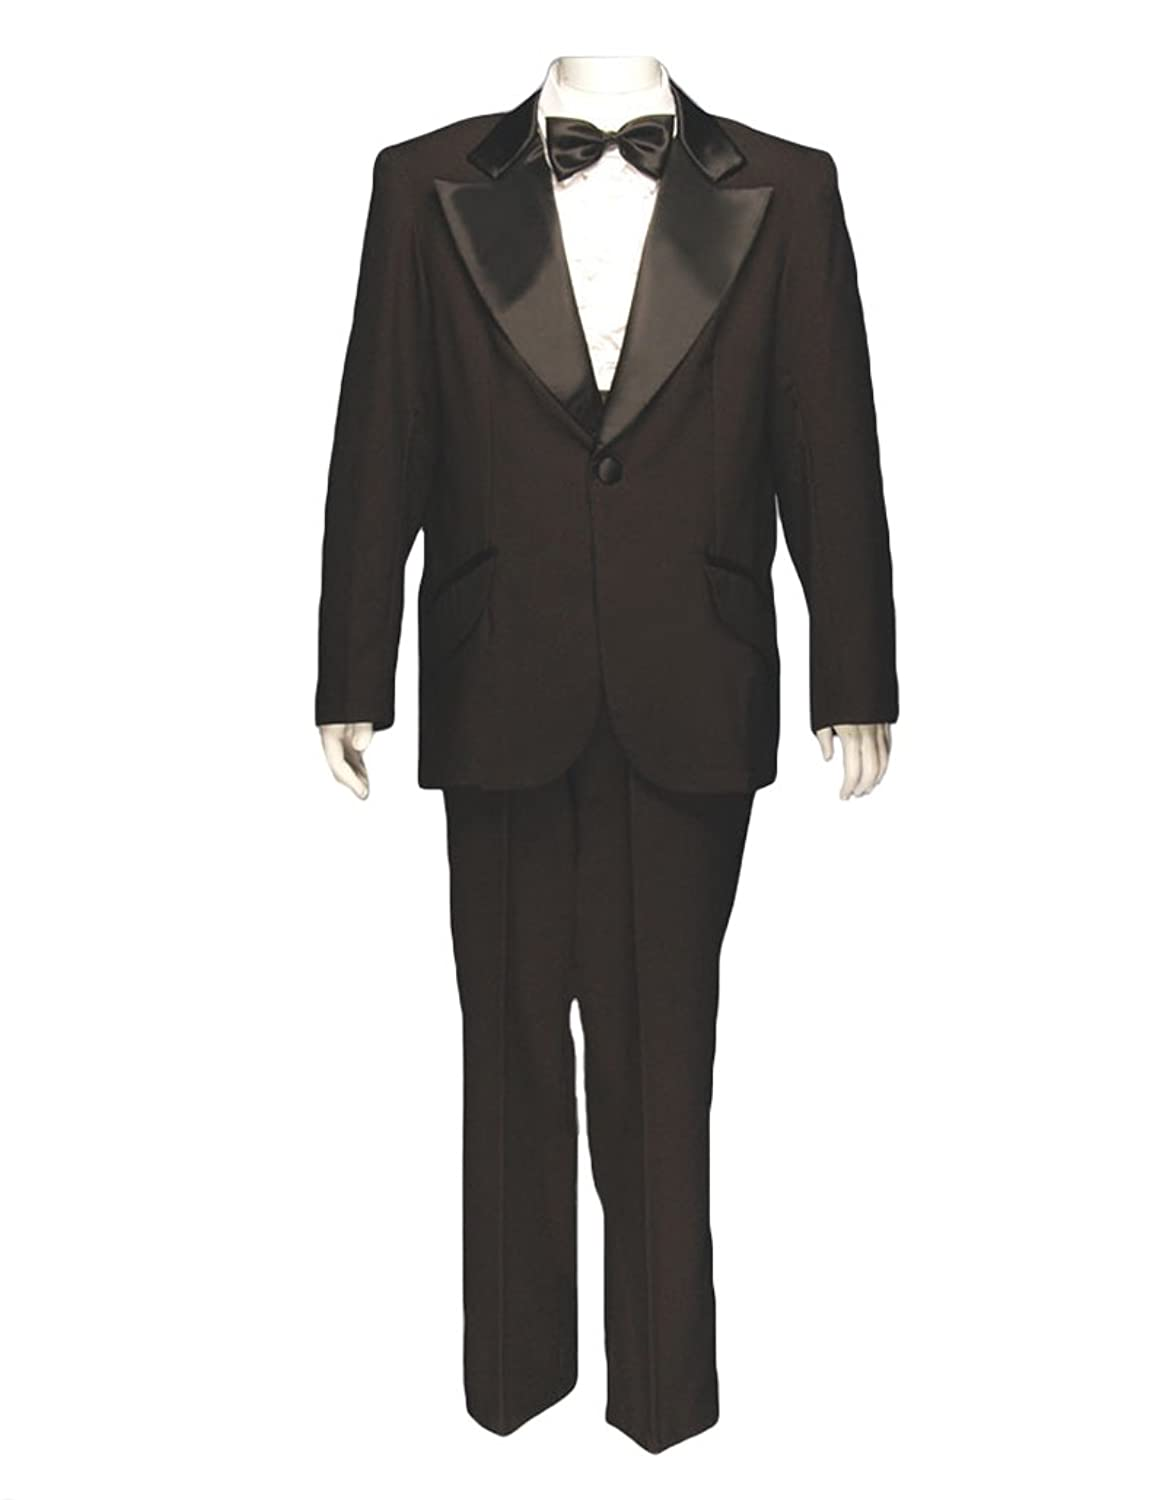 New Vintage Tuxedos, Tailcoats, Morning Suits, Dinner Jackets Mens Formal Adult Deluxe Tuxedo w/o Shirt Black  AT vintagedancer.com